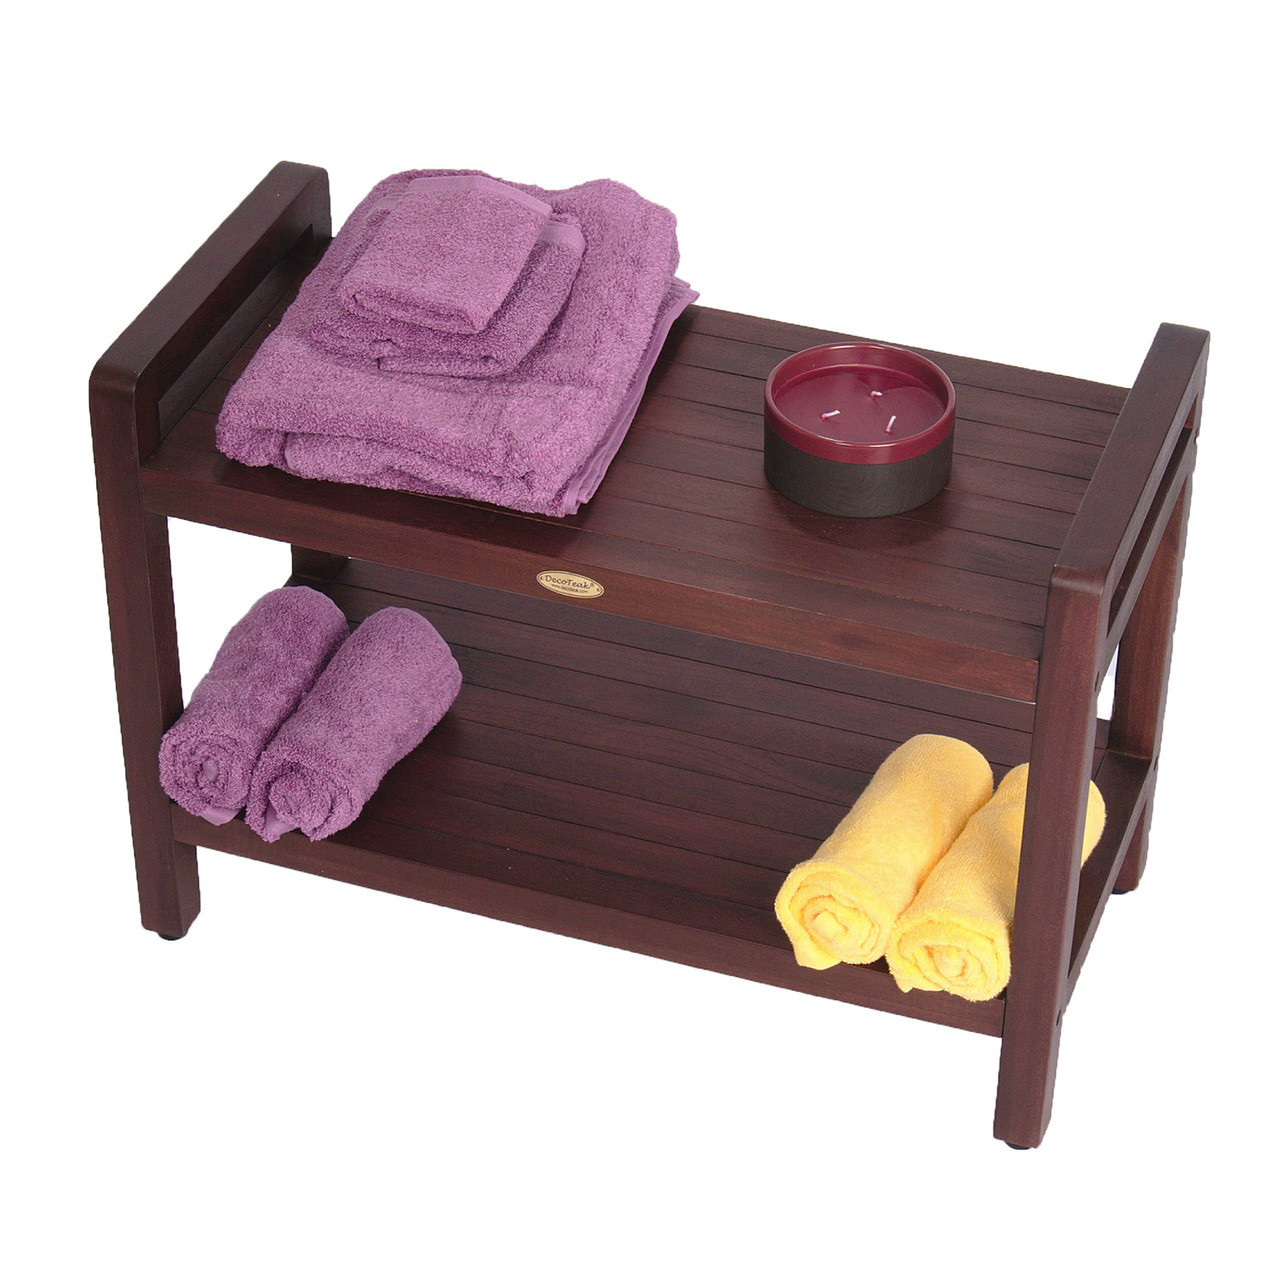 """DecoTeak Eleganto 29"""" Teak Wood Shower Bench with LiftAide Arms and Shelf in Woodland Brown Finish"""